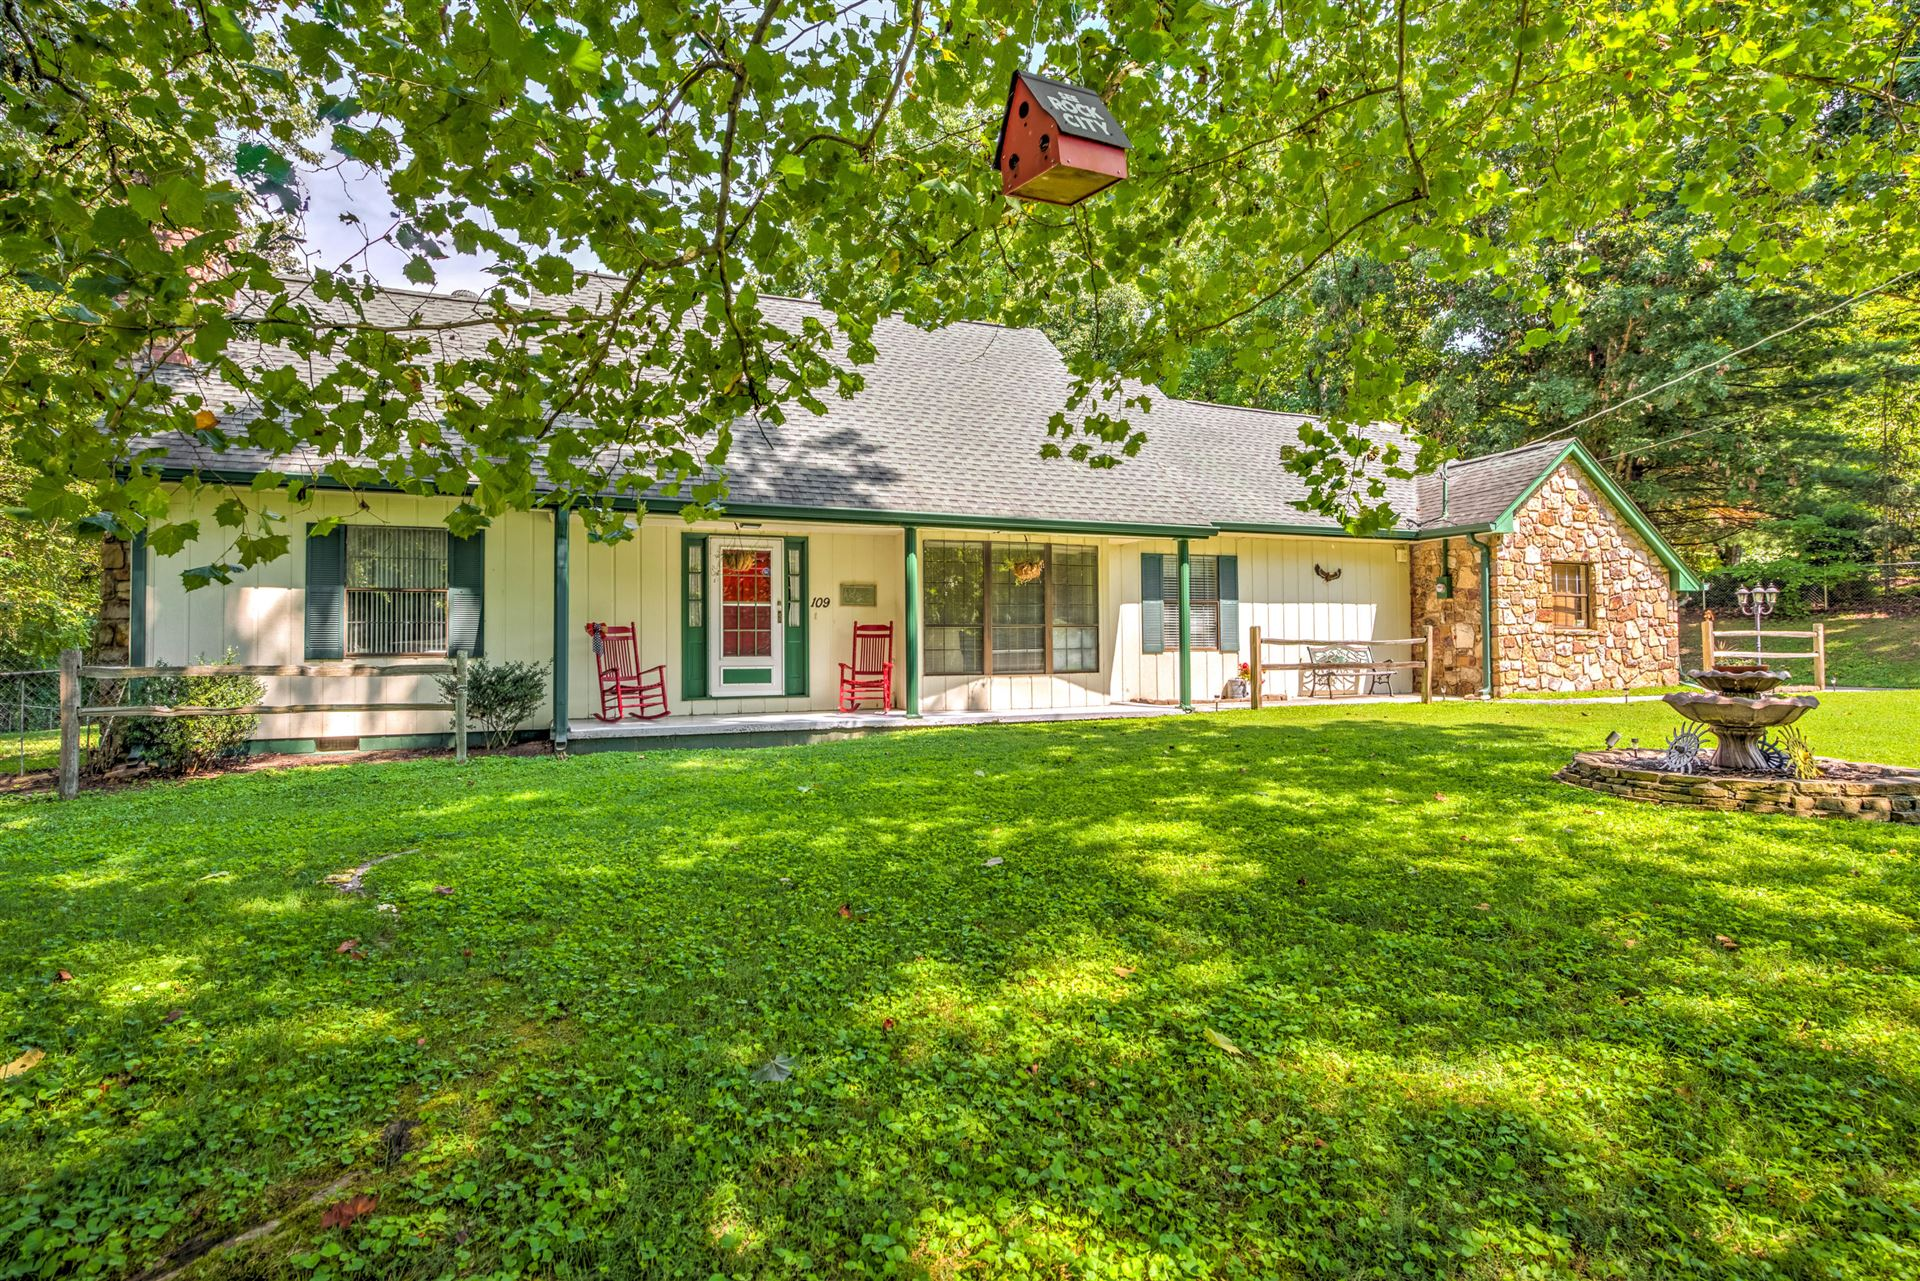 Photo of 109 East Circle, Powell, TN 37849 (MLS # 1127380)